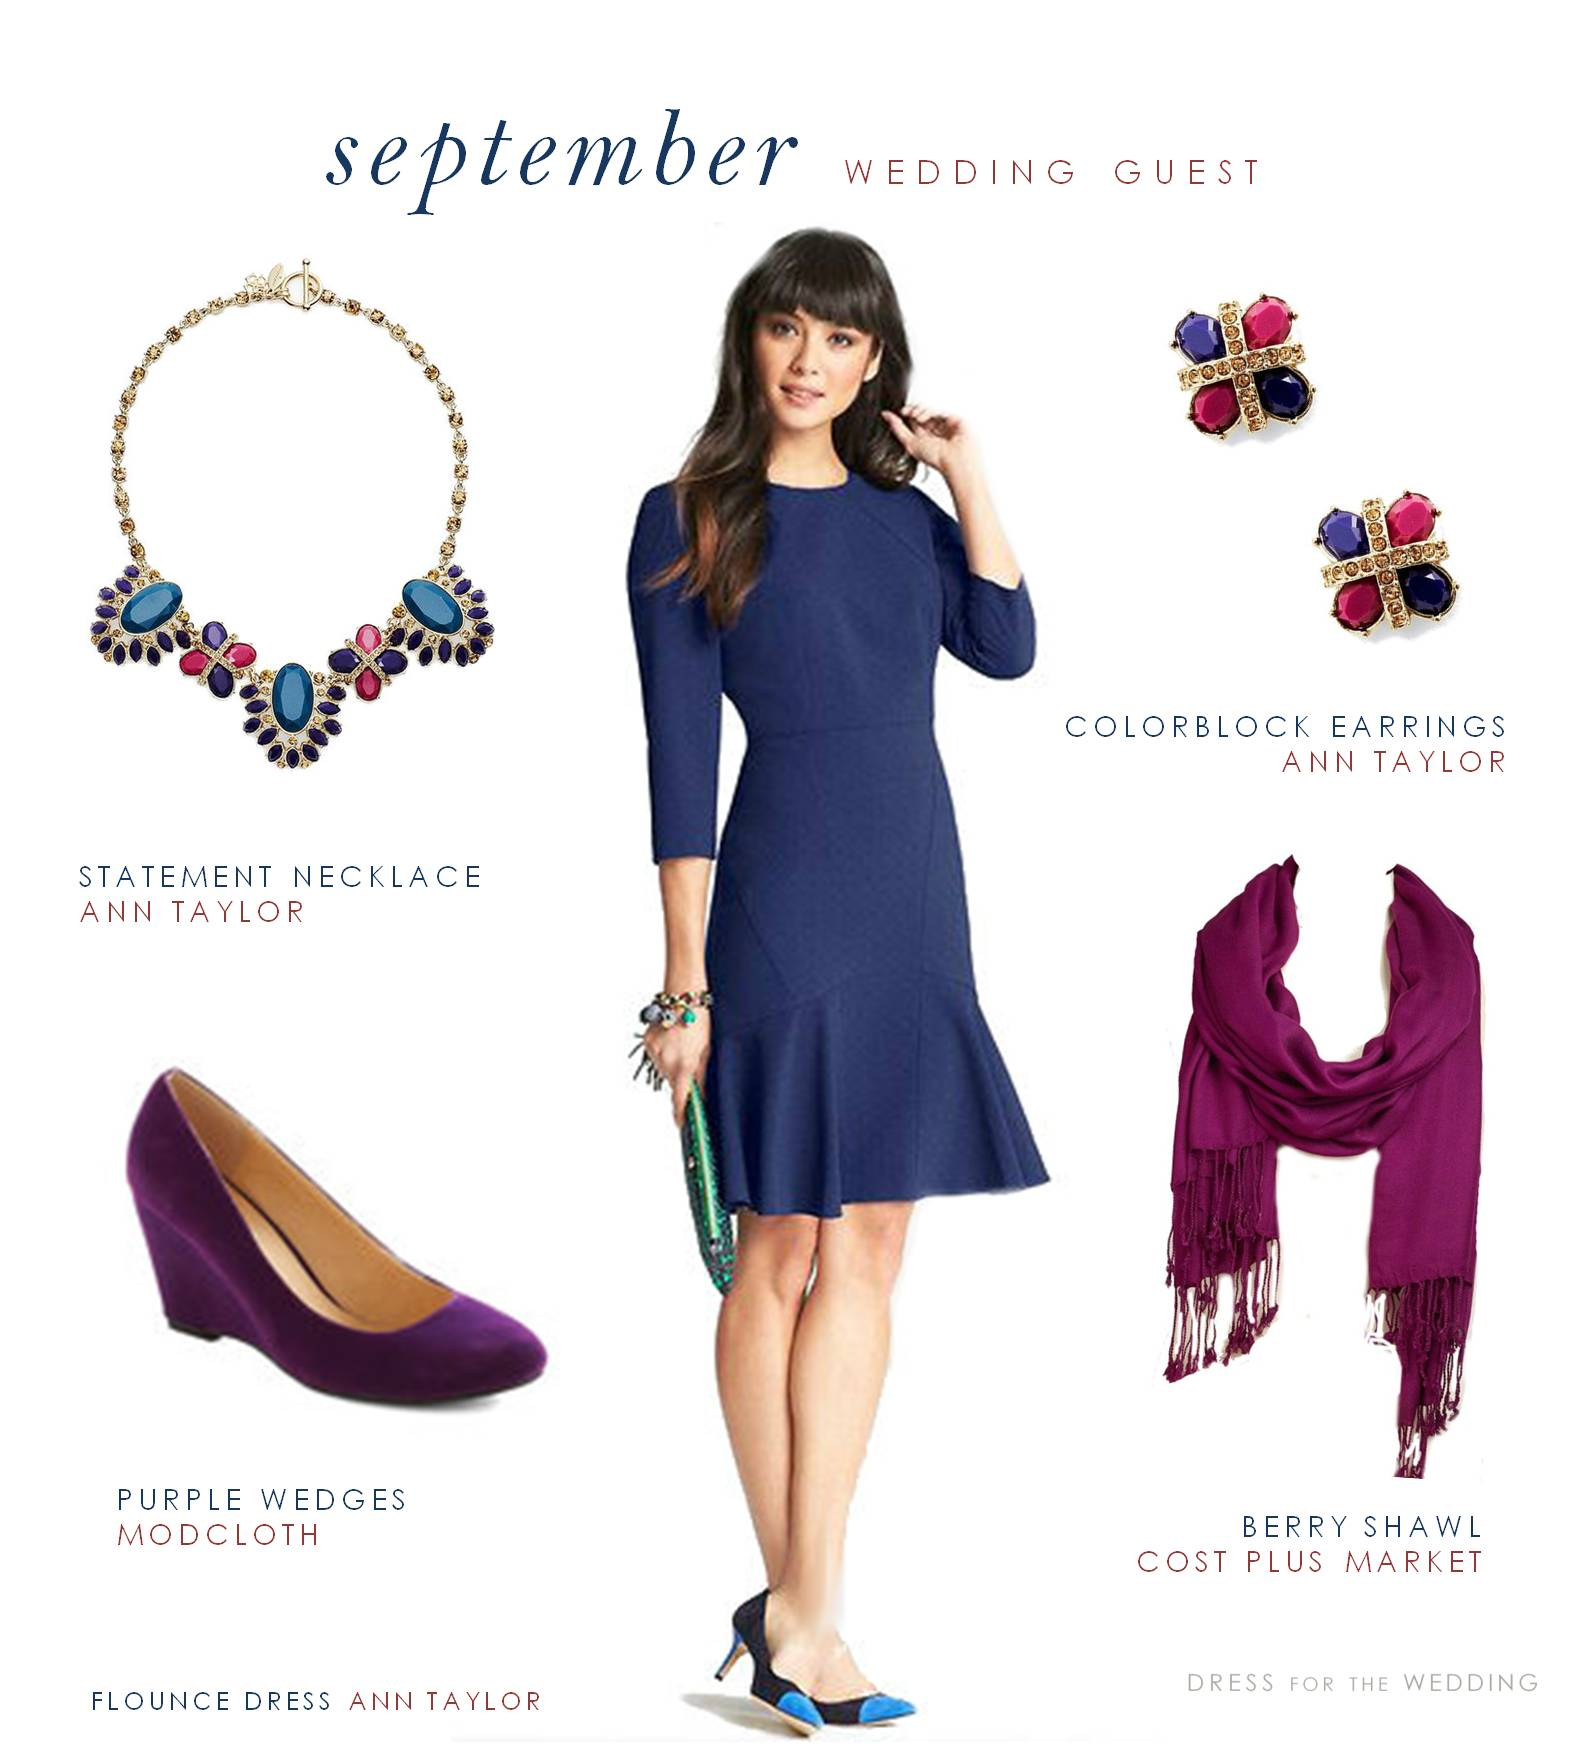 What To Wear To A September Wedding: How To Dress For An Outdoor Fall Wedding